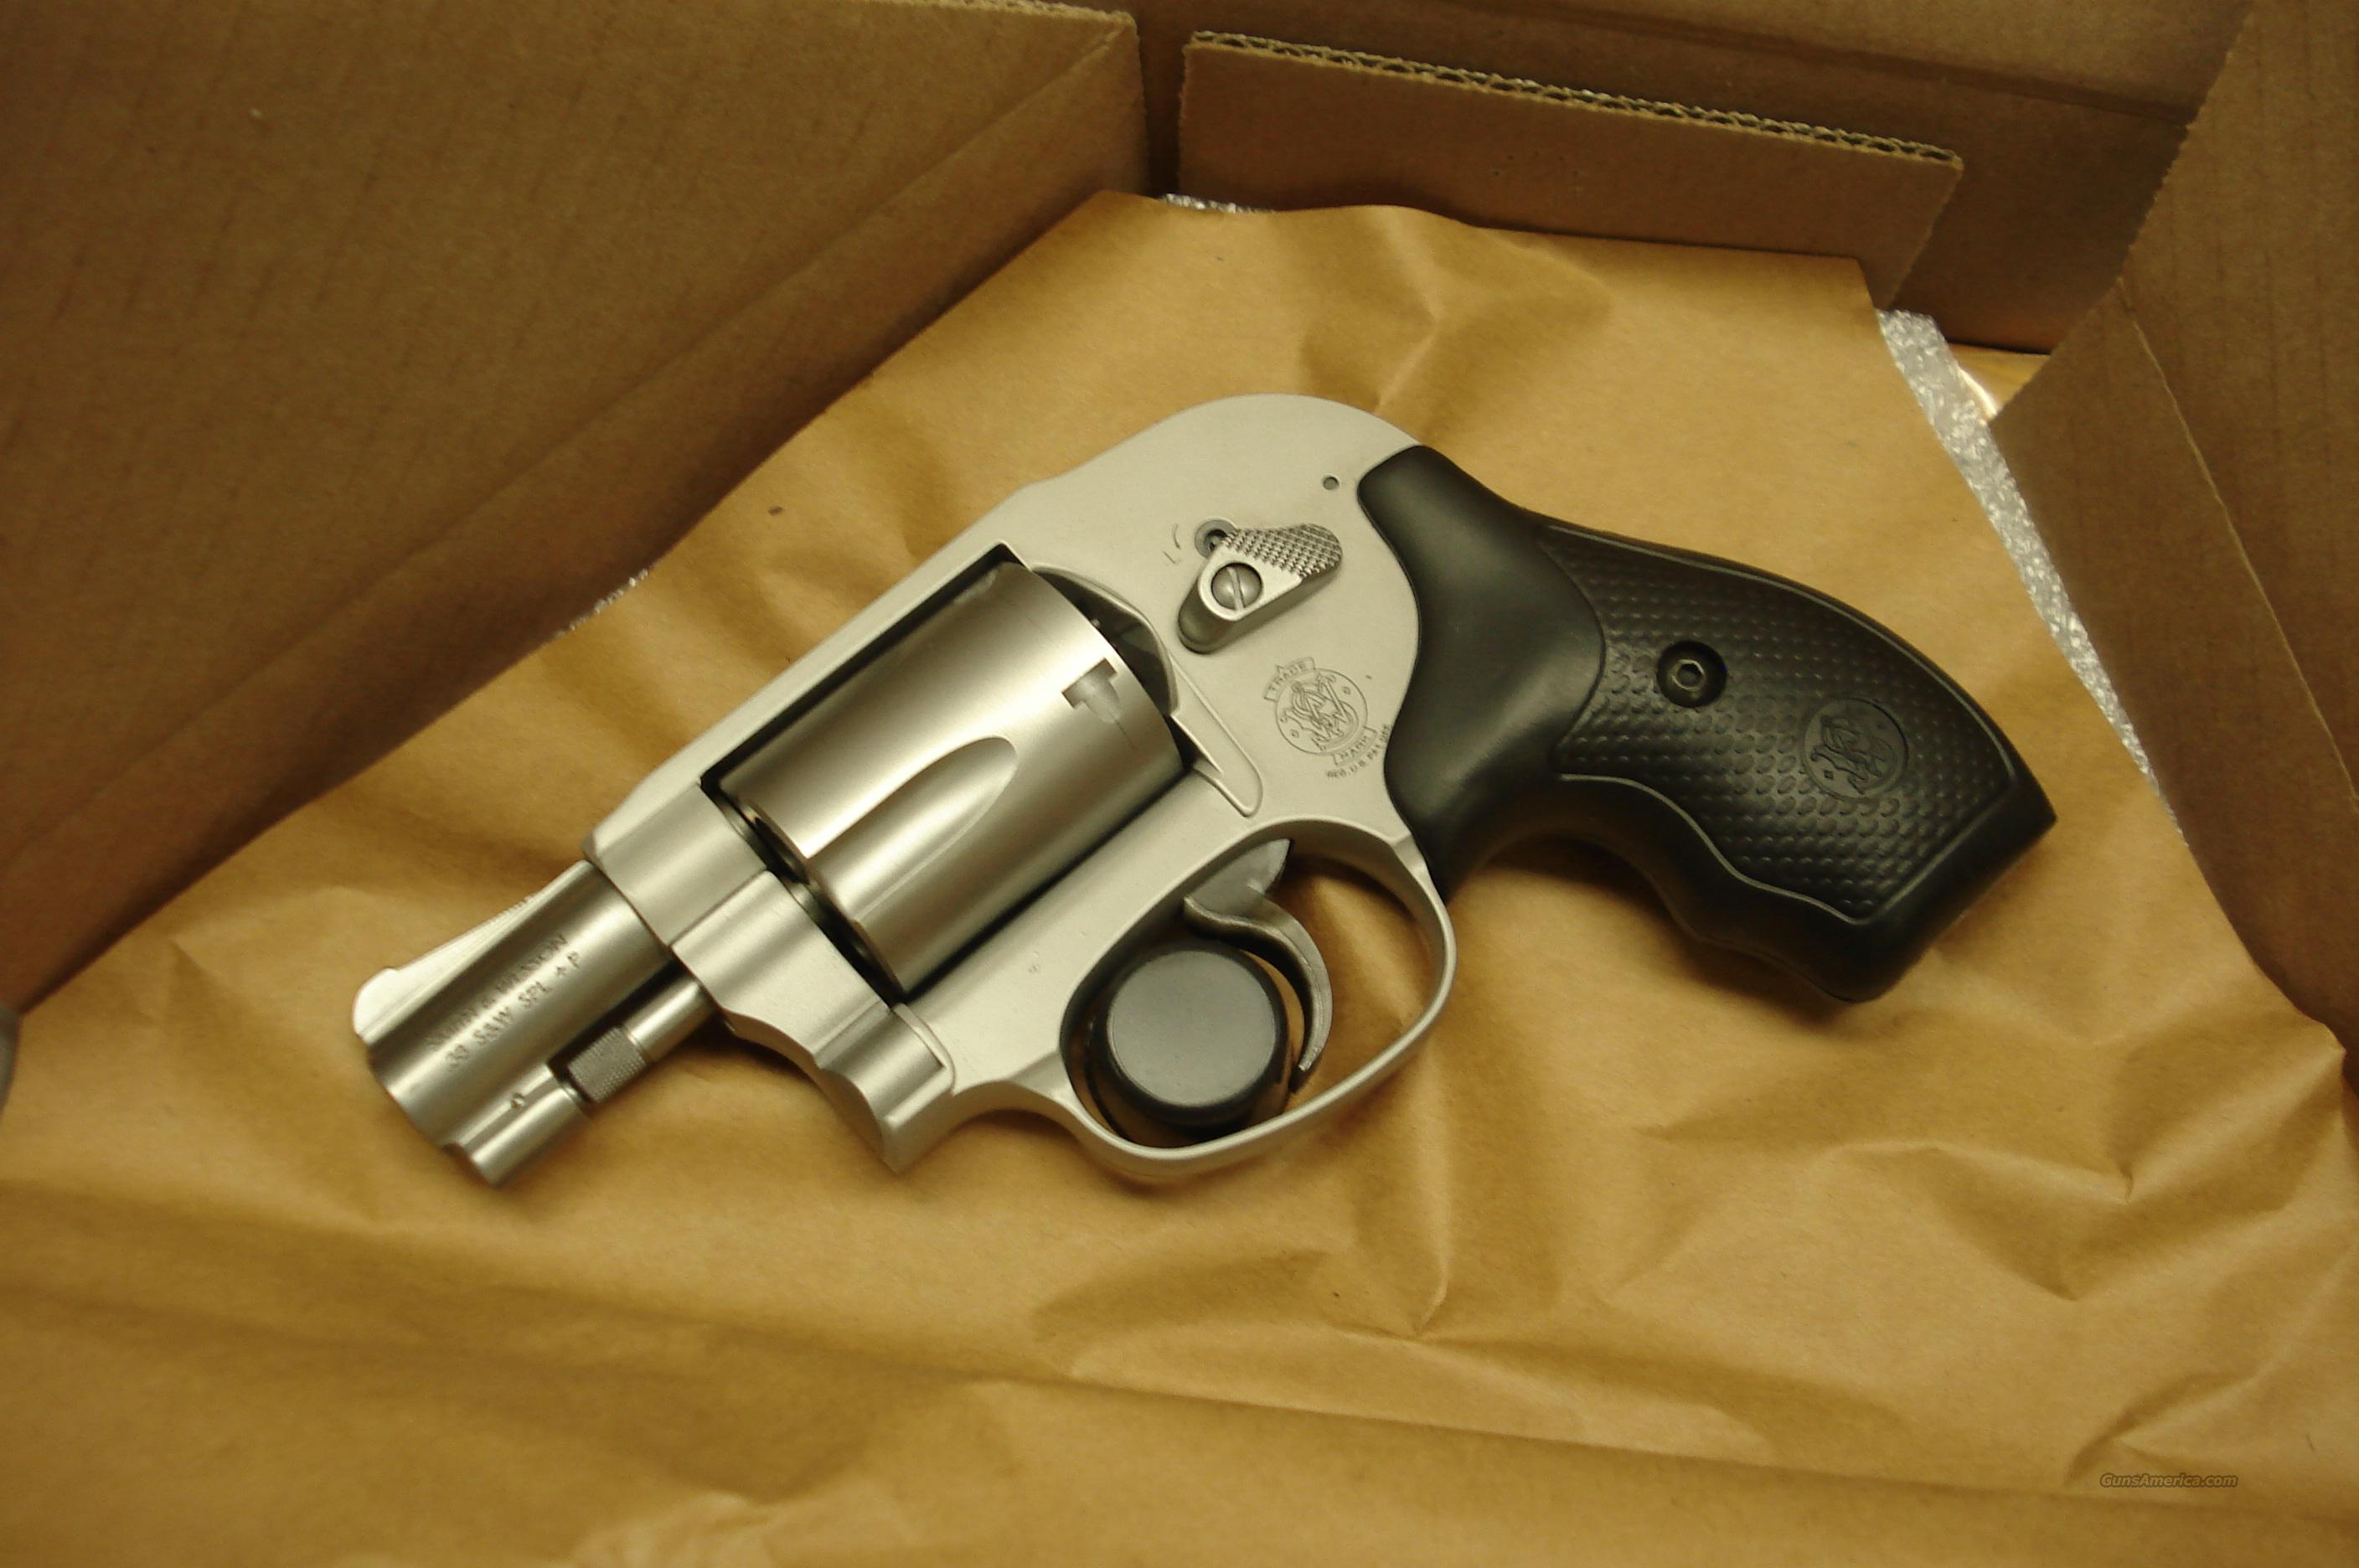 SMITH AND WESSON 638 AIRWEIGHT 38SPL. NEW   (163070)    Guns > Pistols > Smith & Wesson Revolvers > Pocket Pistols